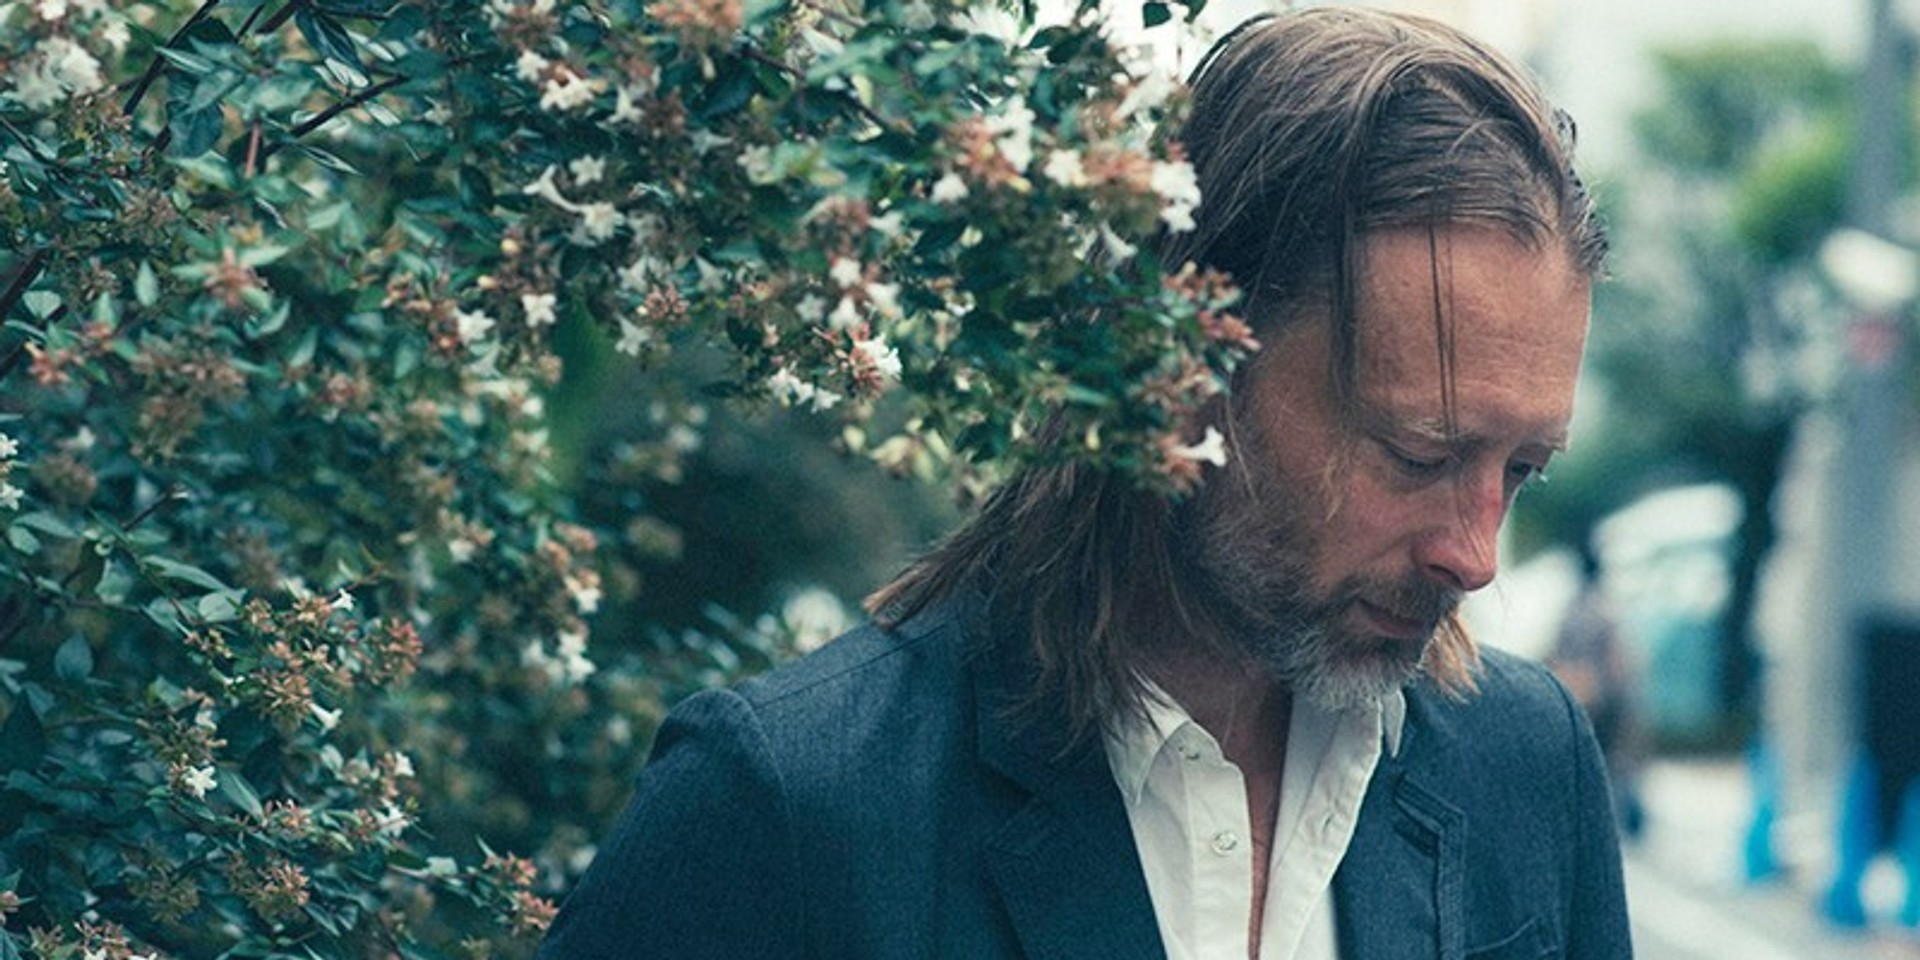 Thom Yorke debuts new song 'The Axe' during first show of European tour – watch